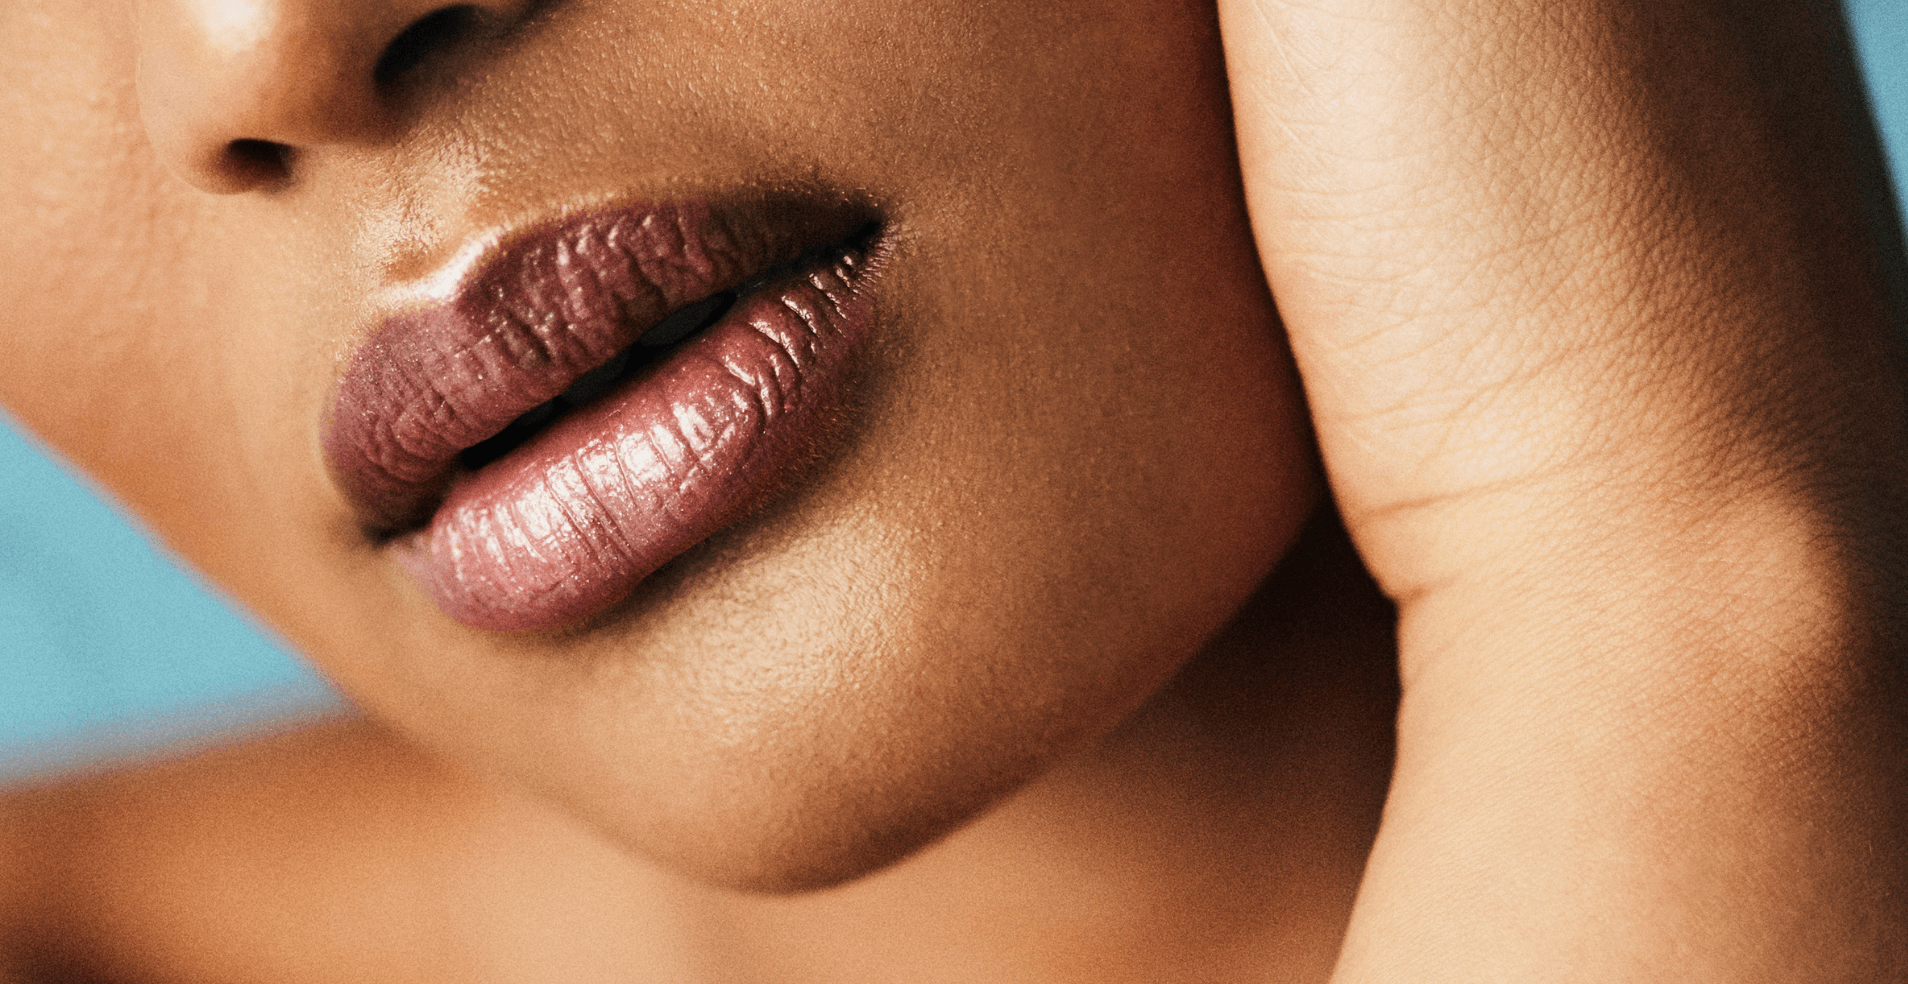 Close up of lip fillers at L'atelier Aesthetics in Harley Street